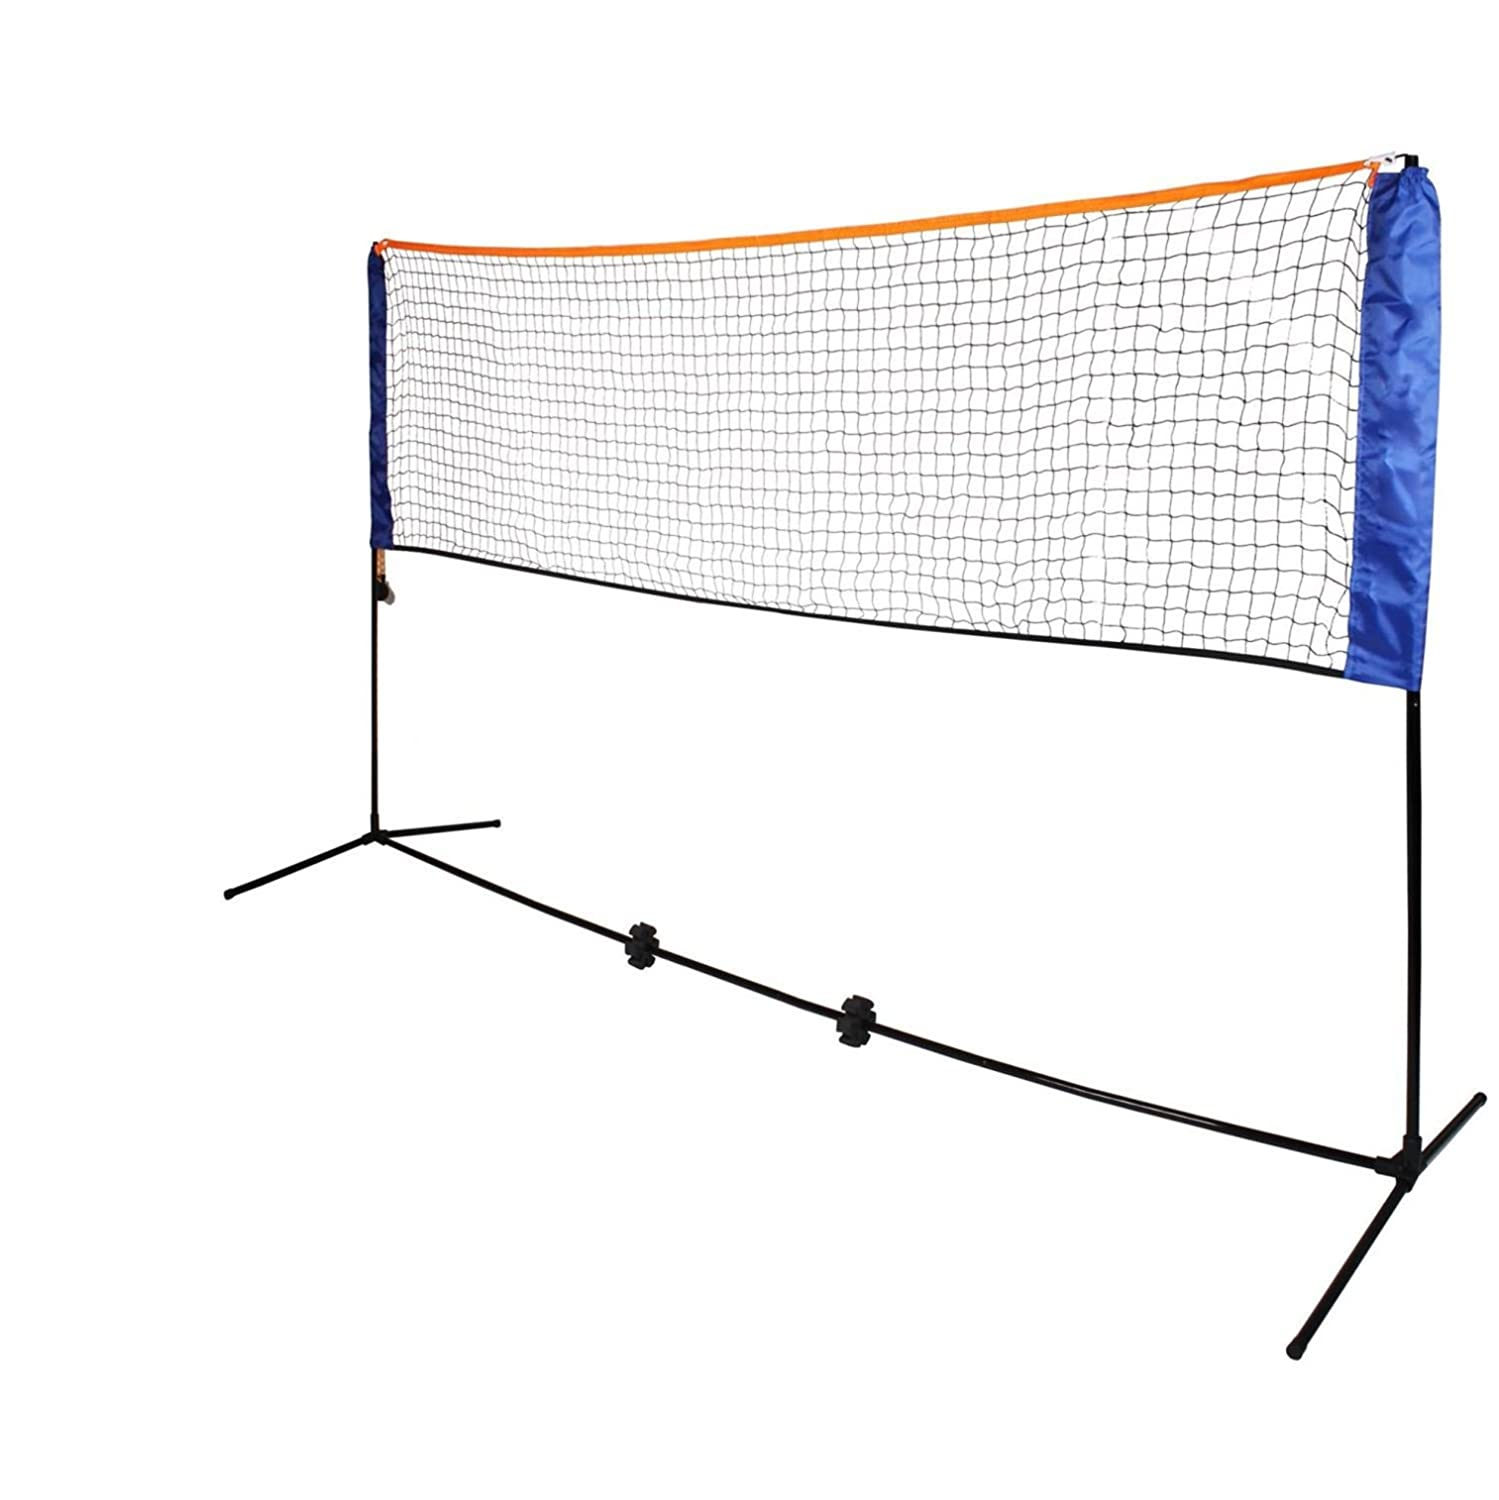 Oypla Small 3m Adjustable Foldable Badminton Tennis Volleyball Net 3129OYP